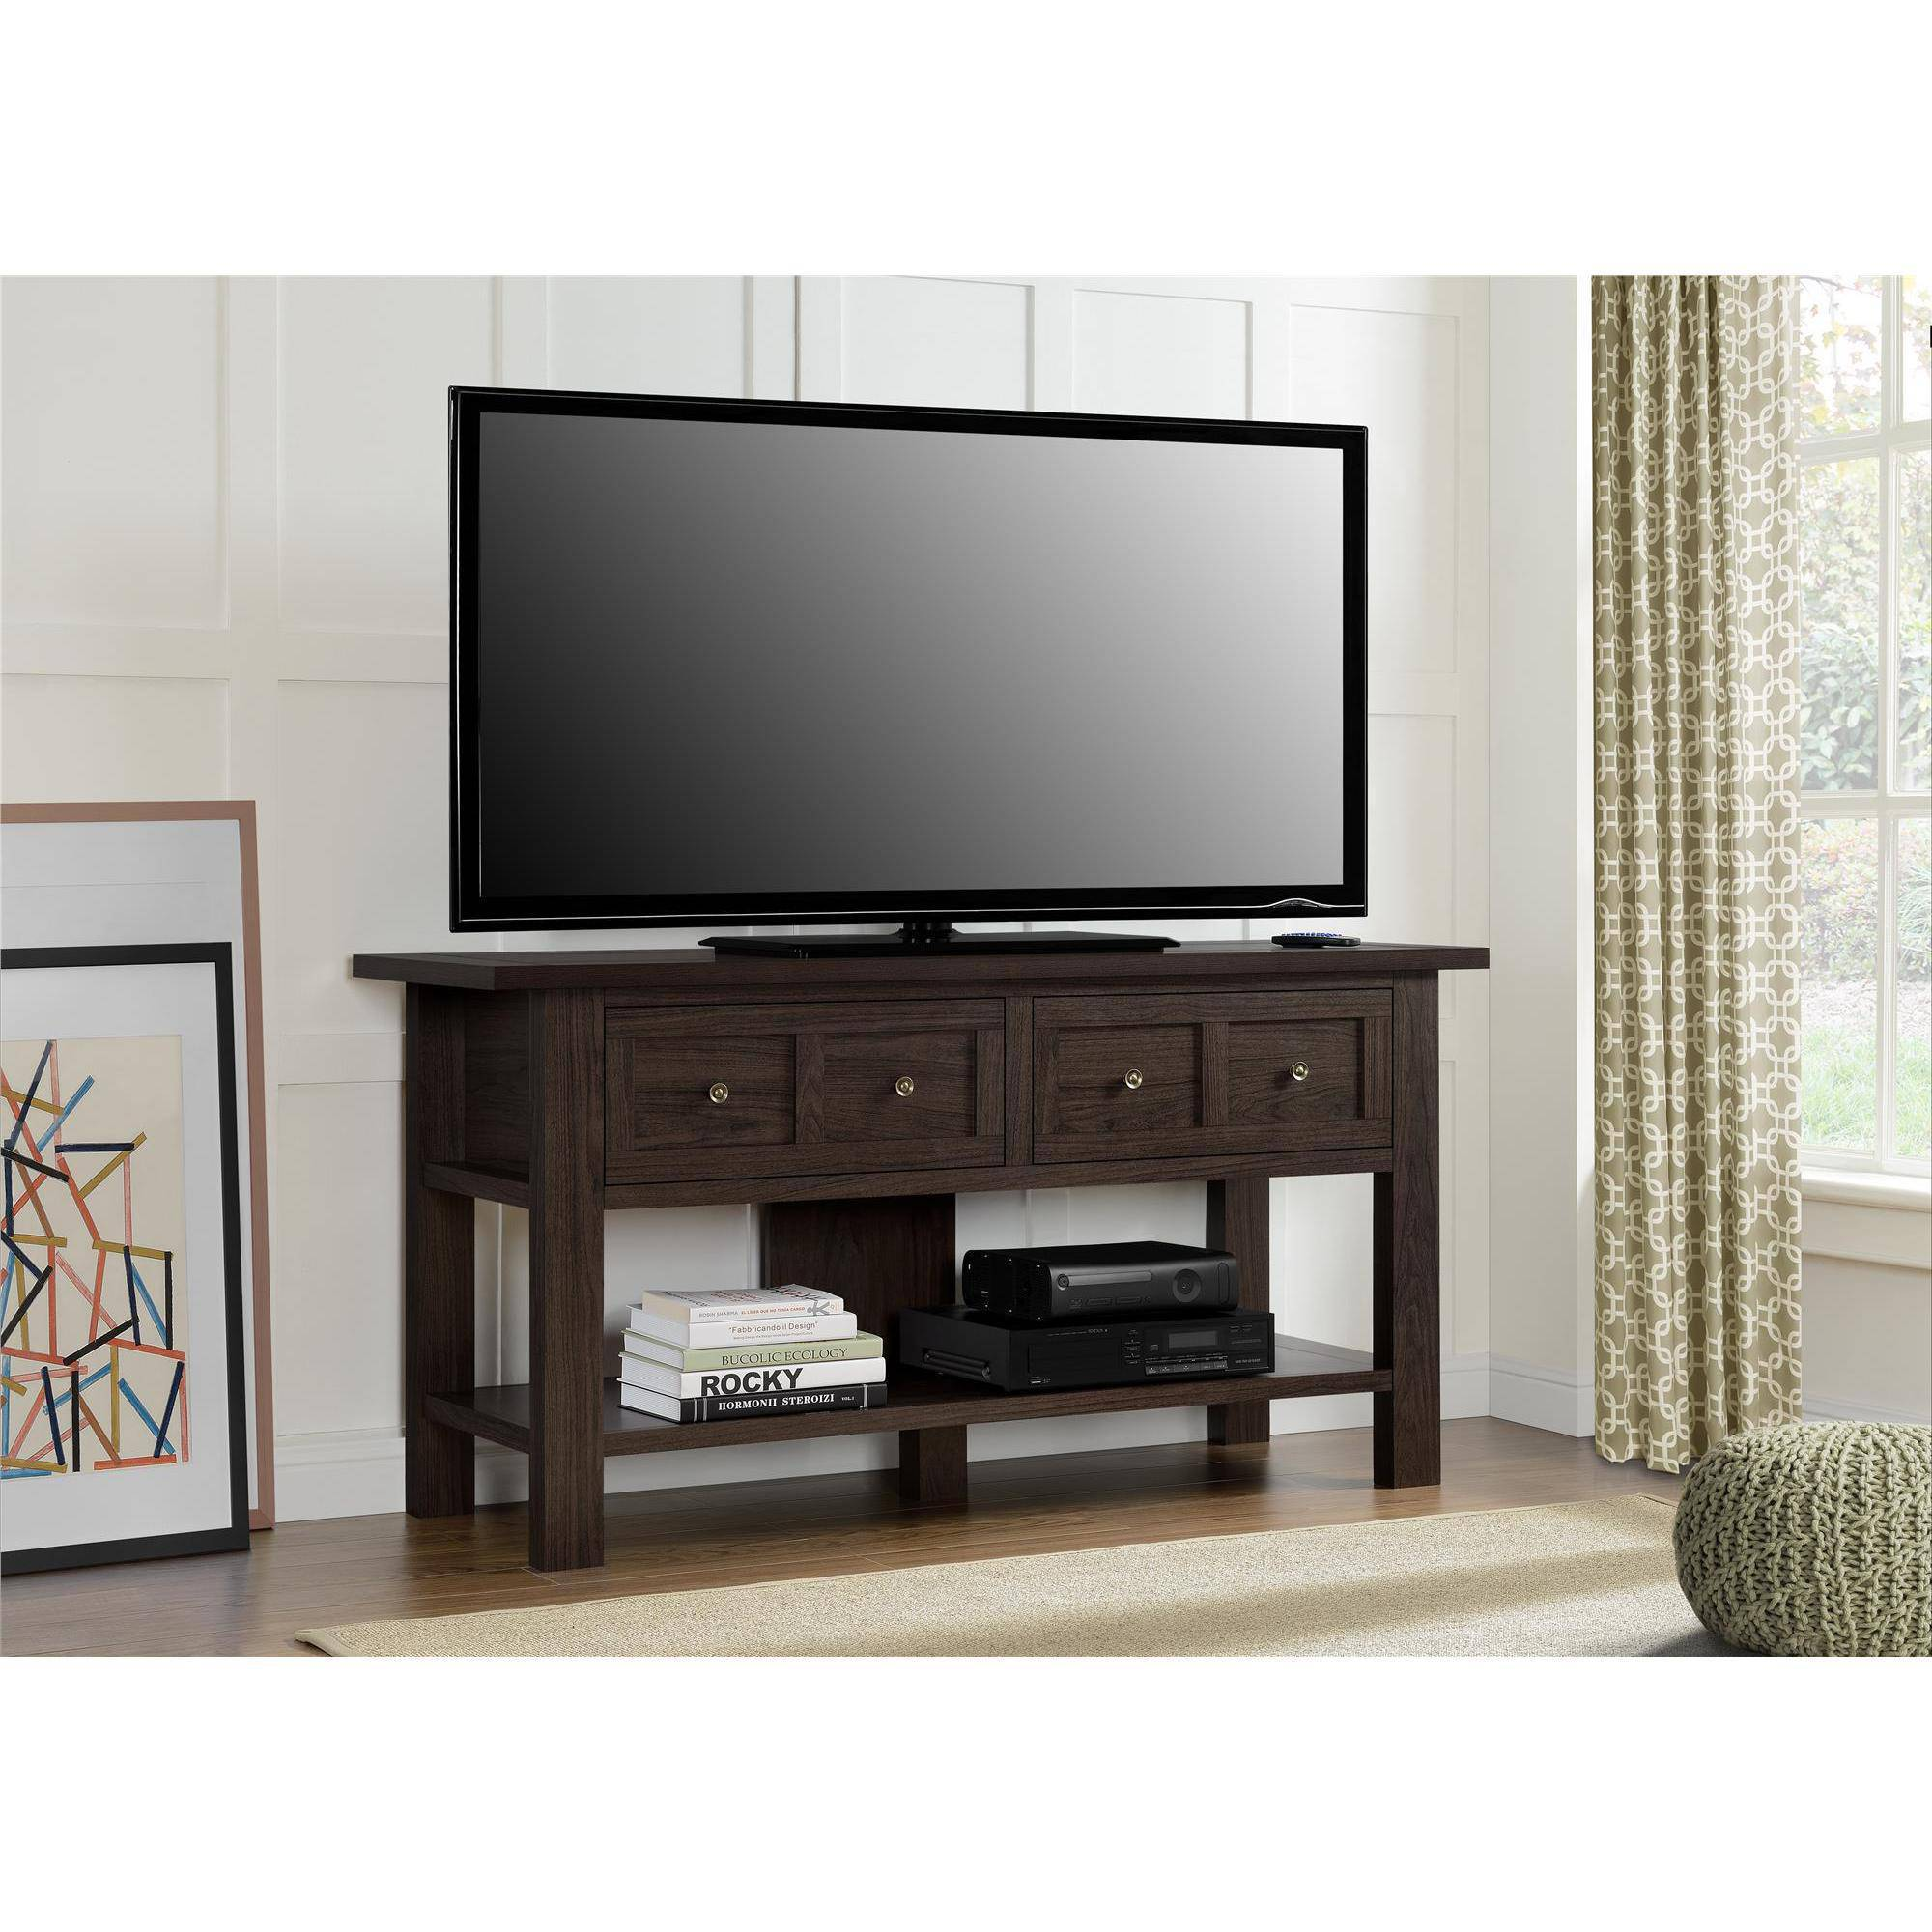 "Ameriwood Home Pillars Apothecary TV Stand for TVs up to 55"" Wide, Cherry"